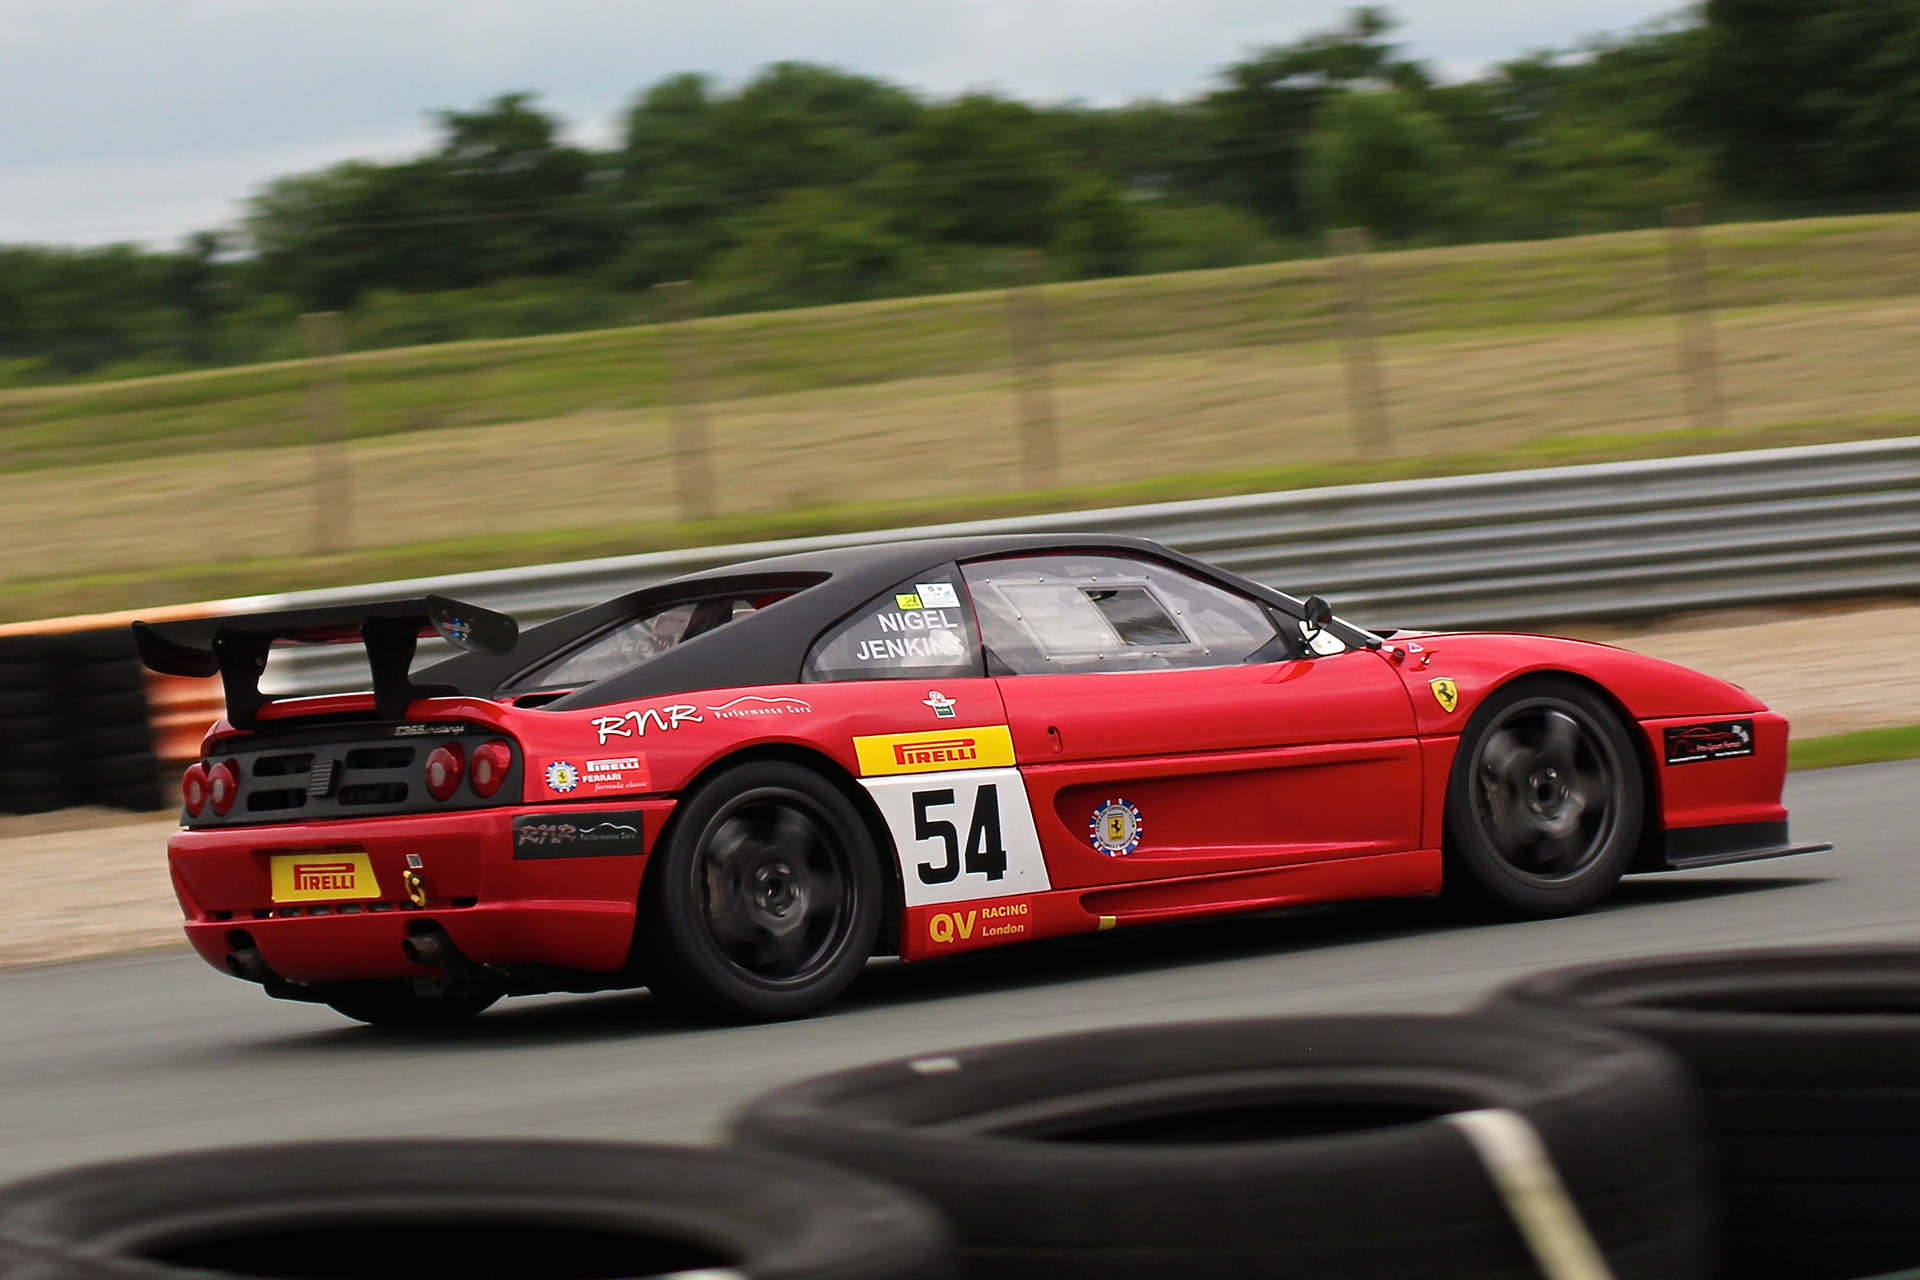 Ferrari F355 Challenge - Pirelli - formula classic Sport et Collection - 2016 - photo Ludo Ferrari